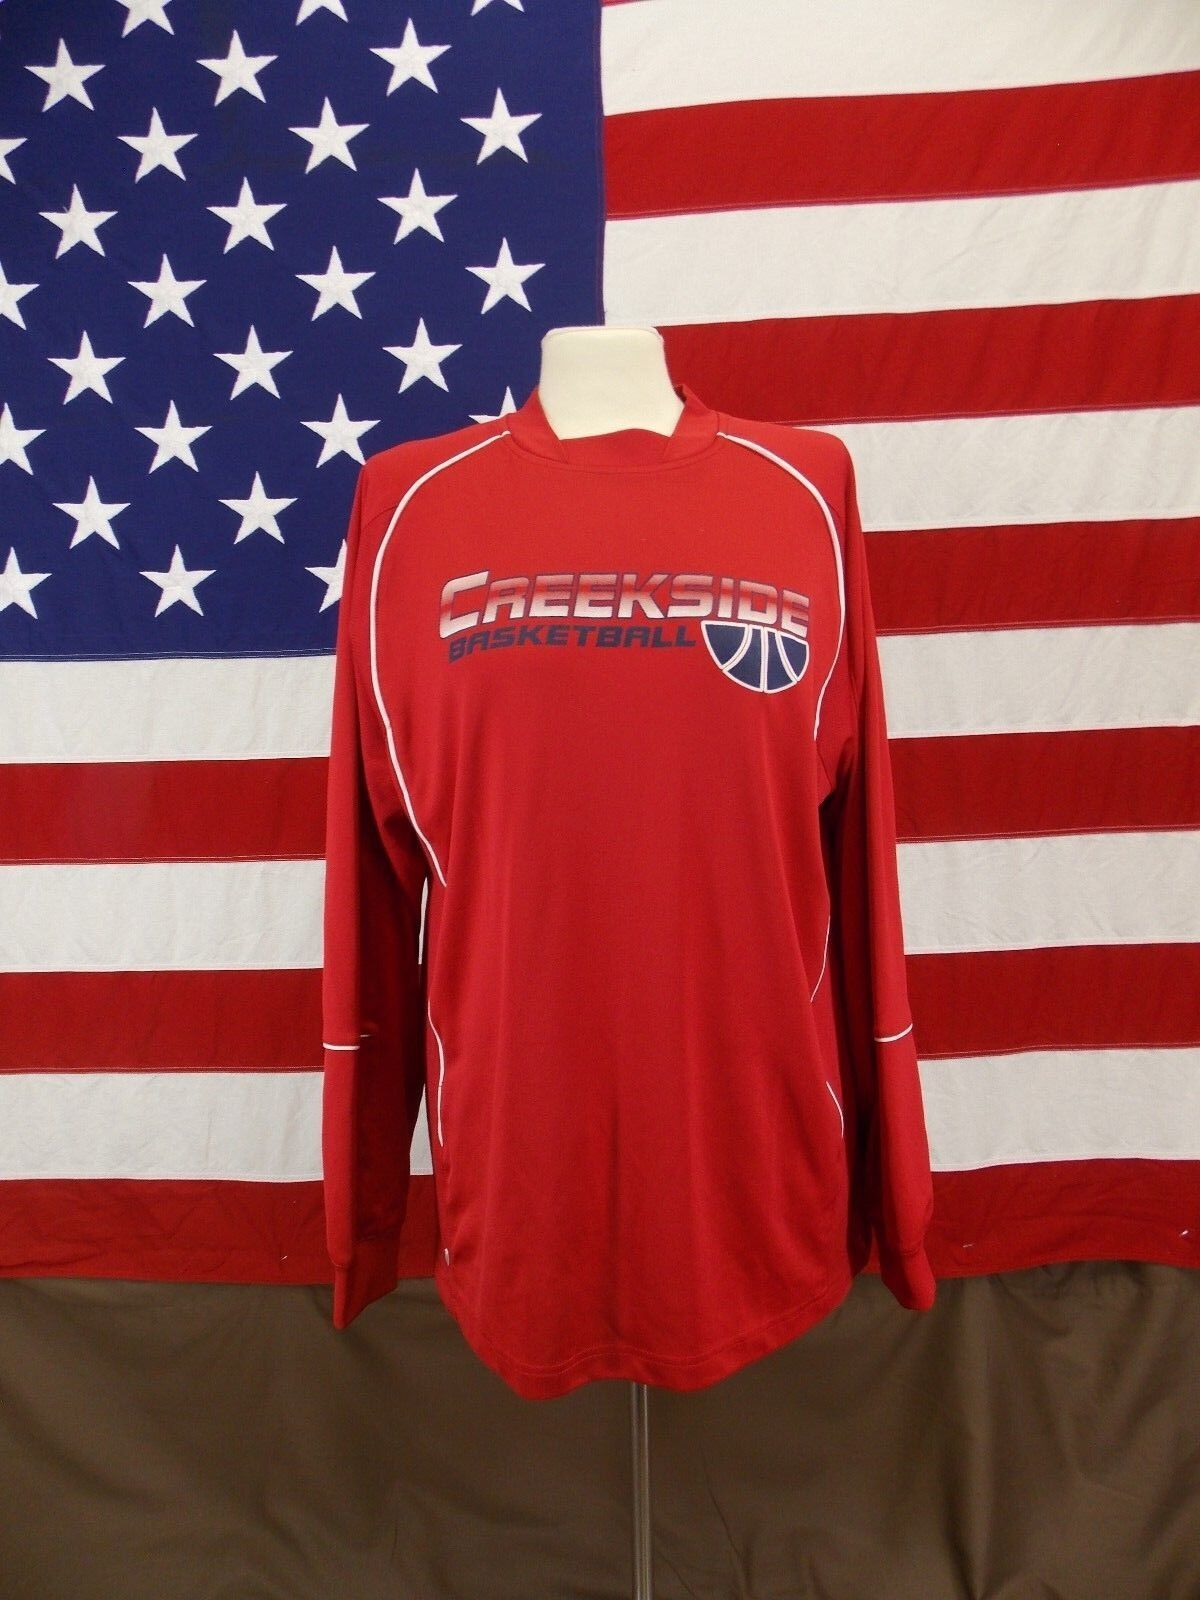 Holloway Shirt Mustangs Creekside Basketball Long Sleeved Men's Size M Red